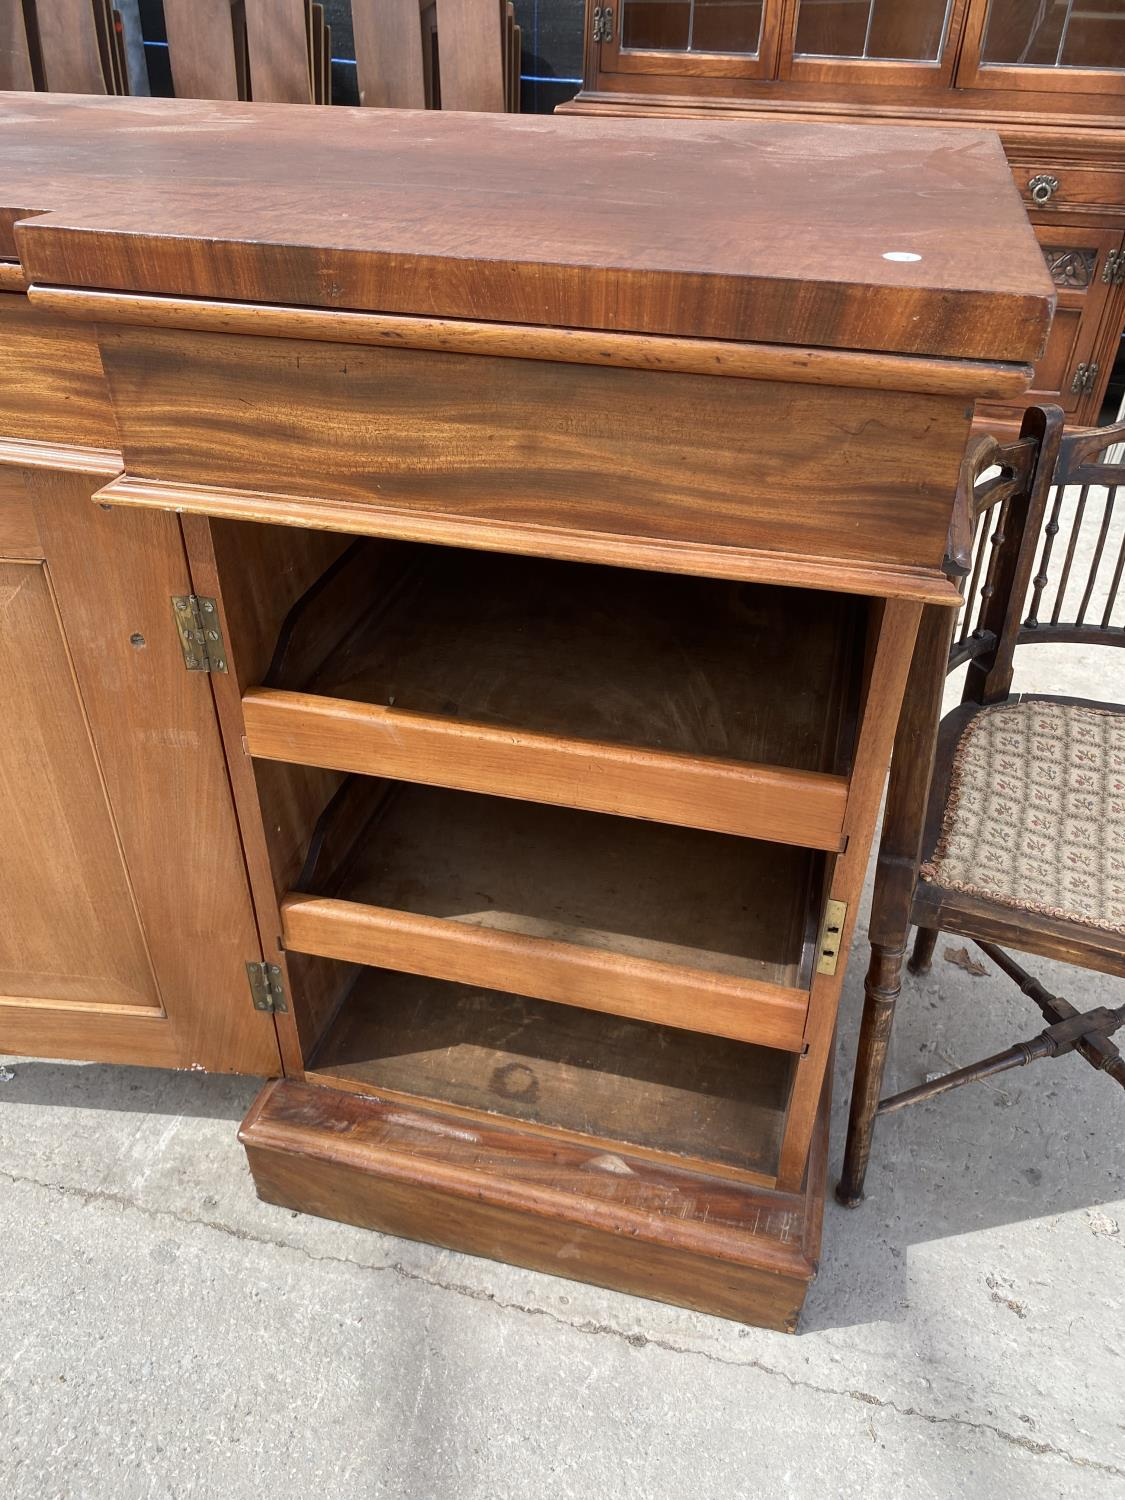 """A VICTORIAN INVERTED BREAKFRONT MAHOGANY DOUBLE PEDESTAL SIDEBOARD, 72"""" WIDE - Image 2 of 5"""